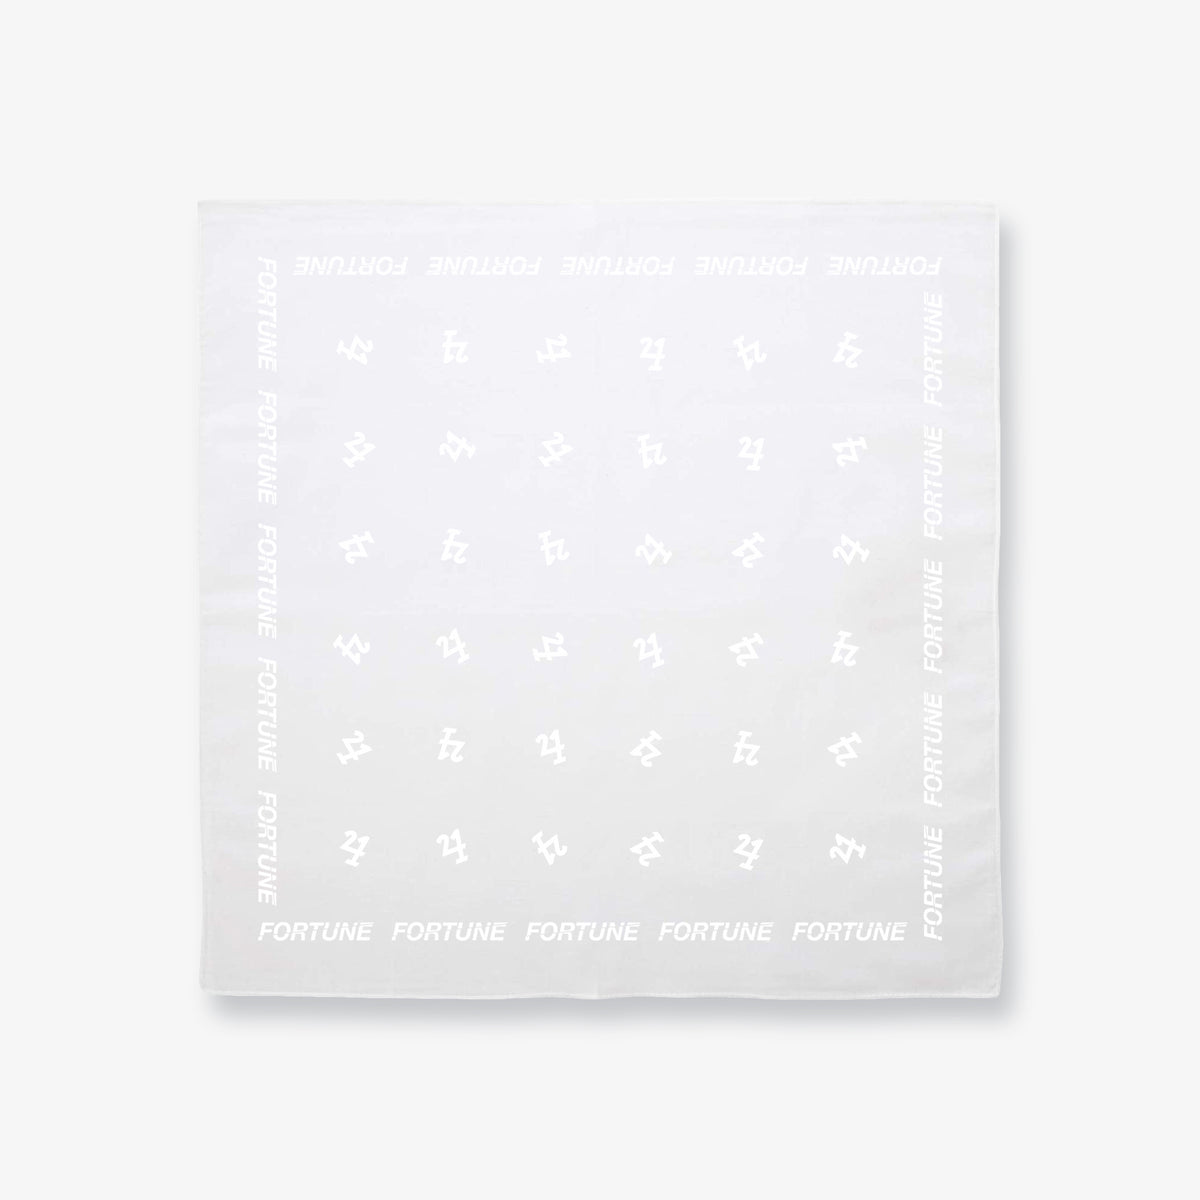 Fortune 421 Bandana - White